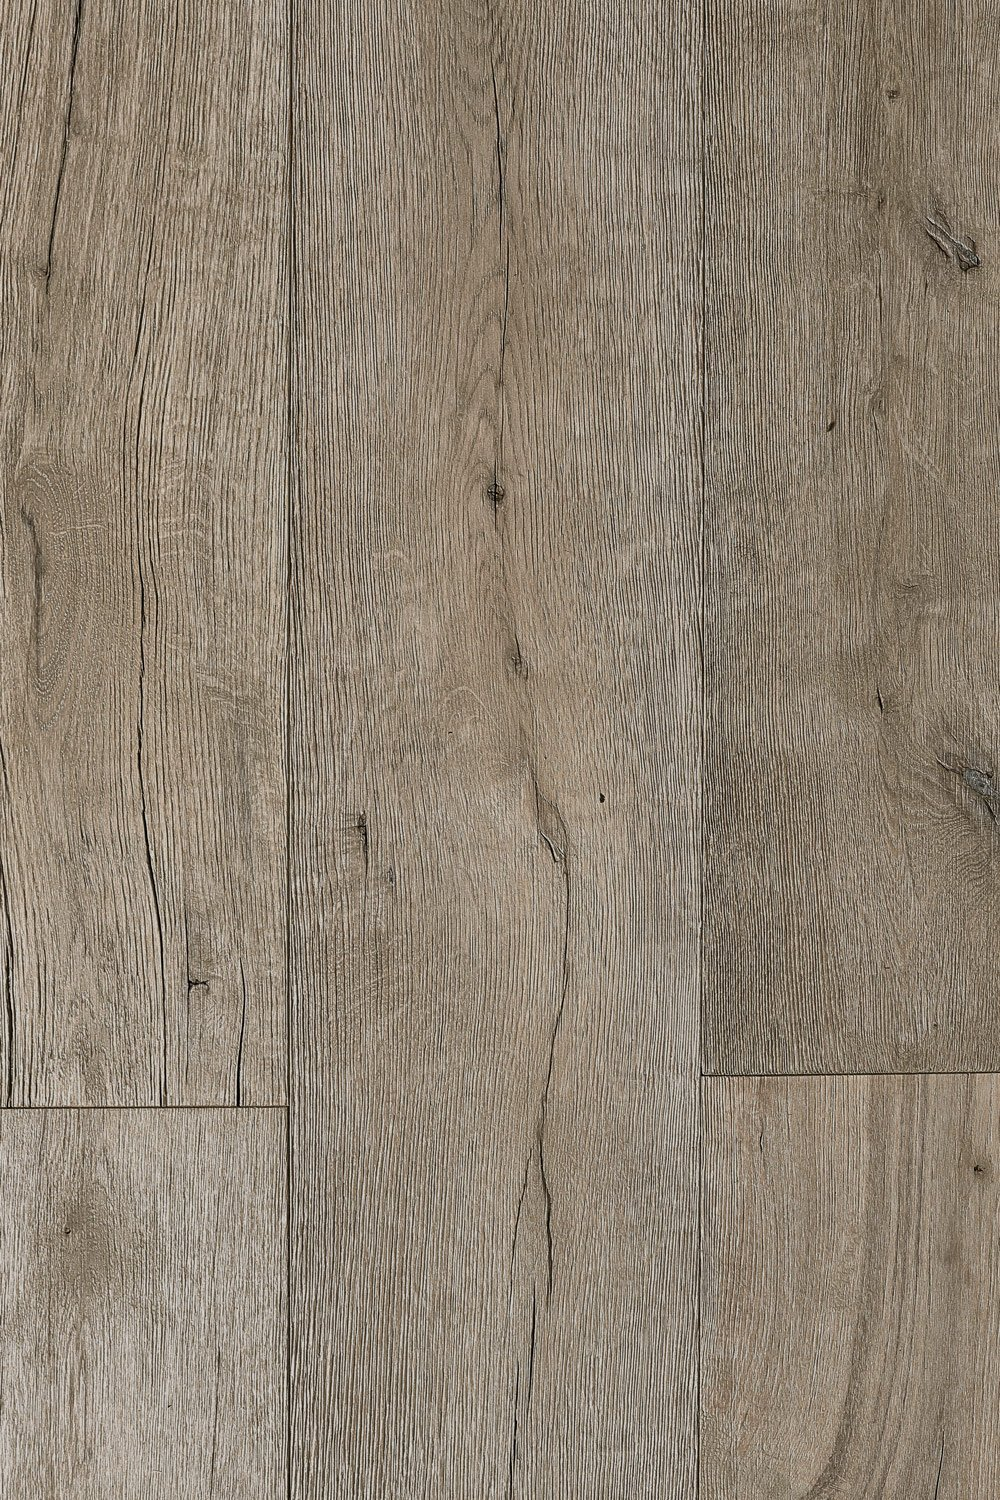 Oil Vintage White 5/8 in. Thick x 7-1/2 in. Wide x Varying Length Floating Engineered European Oak Hardwood Flooring (30.3 sq. ft. / box) - 810001960575